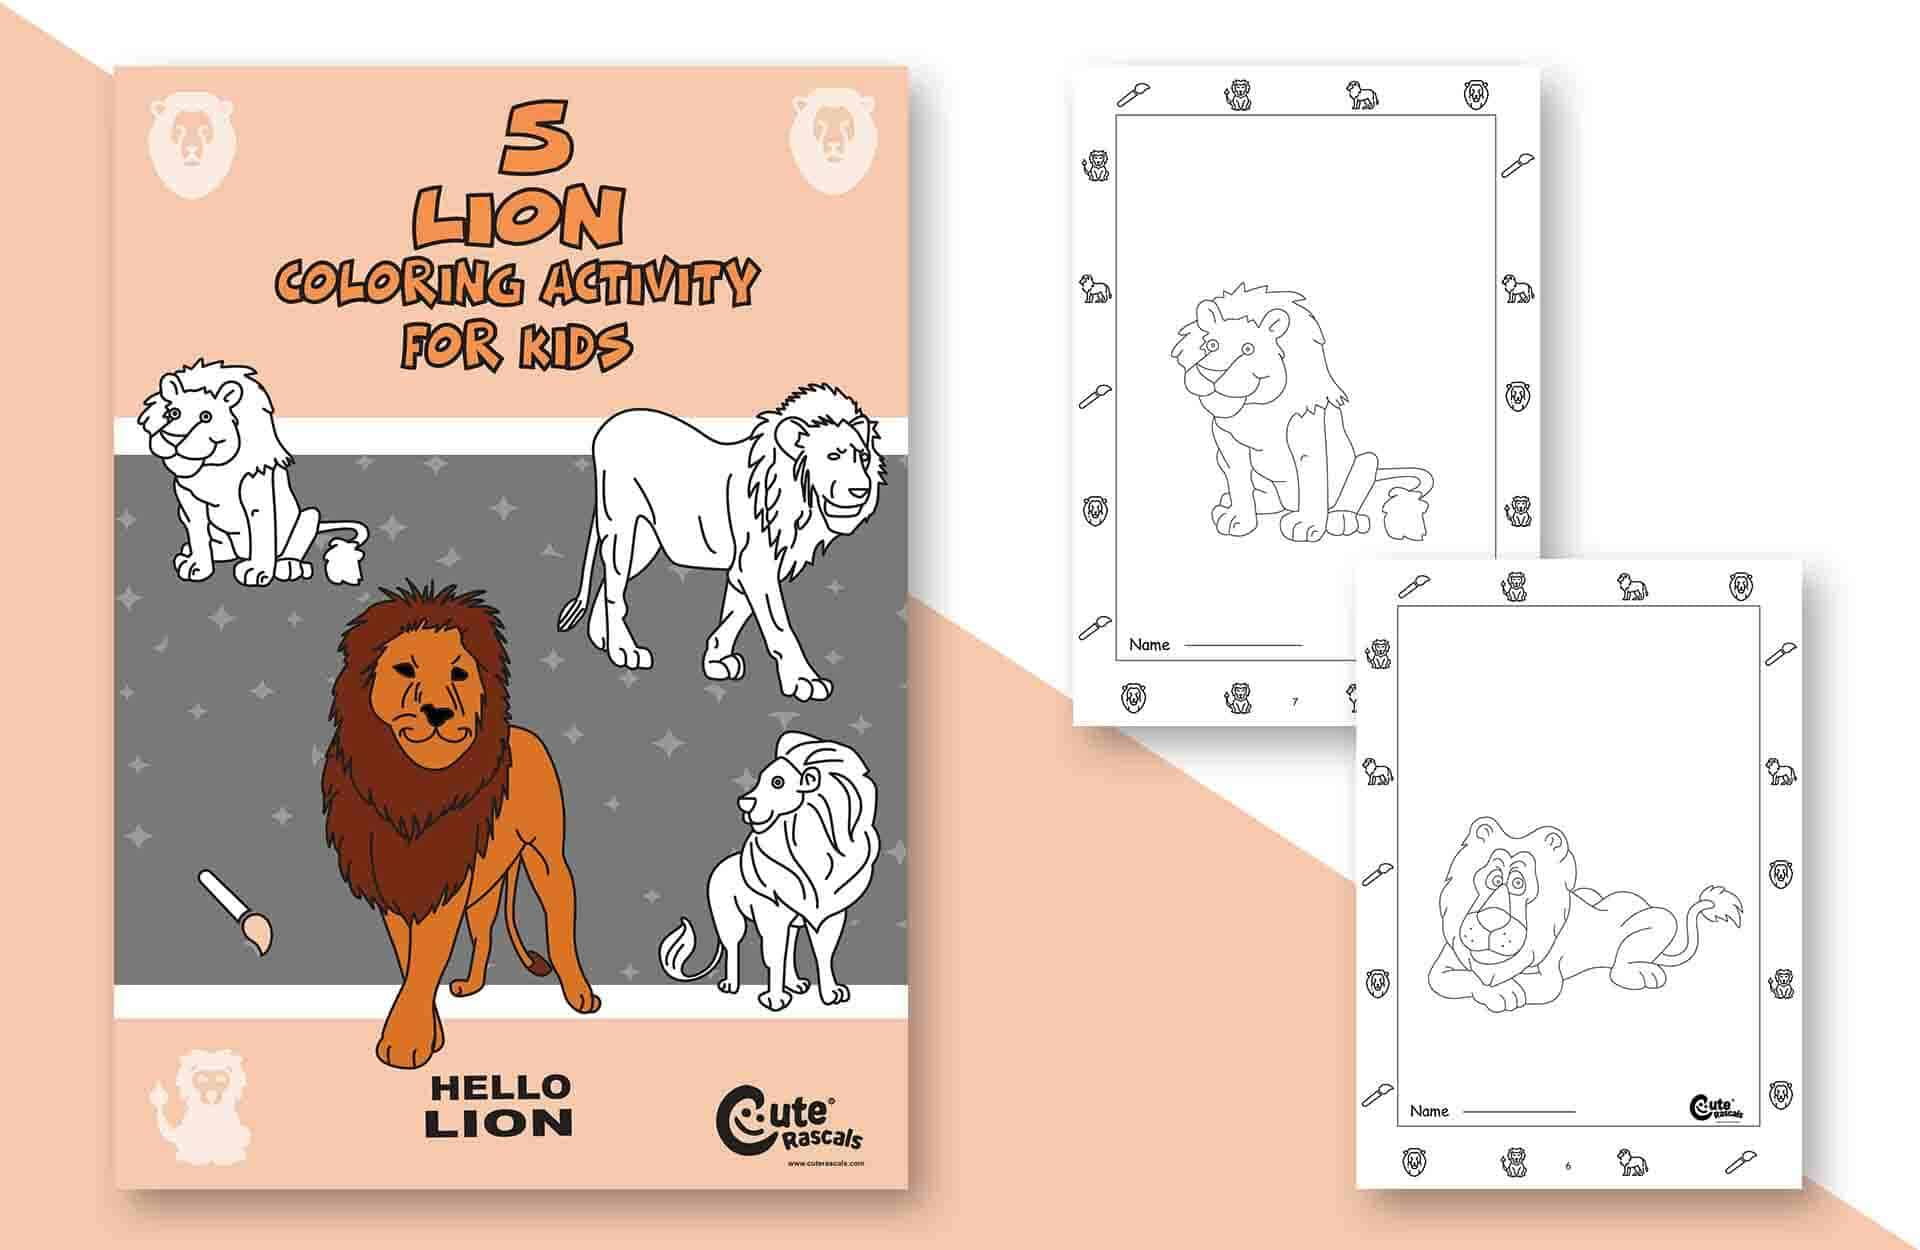 Easy 5 Lion Coloring Pages for Kids: Print and Color!